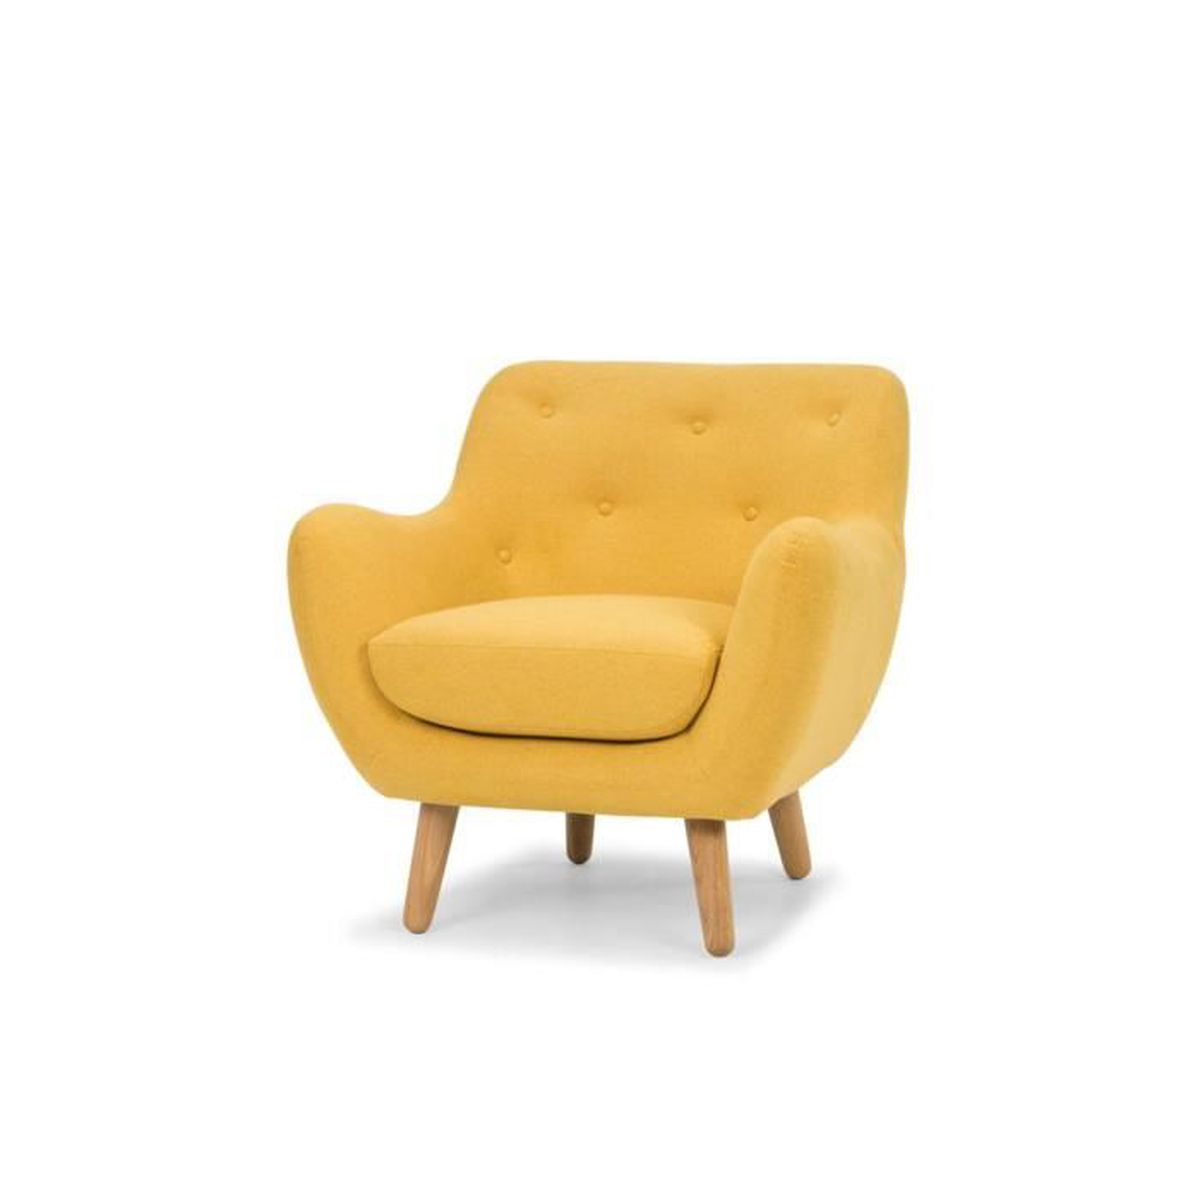 poppy meuble fauteuil esprit scandinave jaune moutarde achat vente fauteuil cdiscount. Black Bedroom Furniture Sets. Home Design Ideas